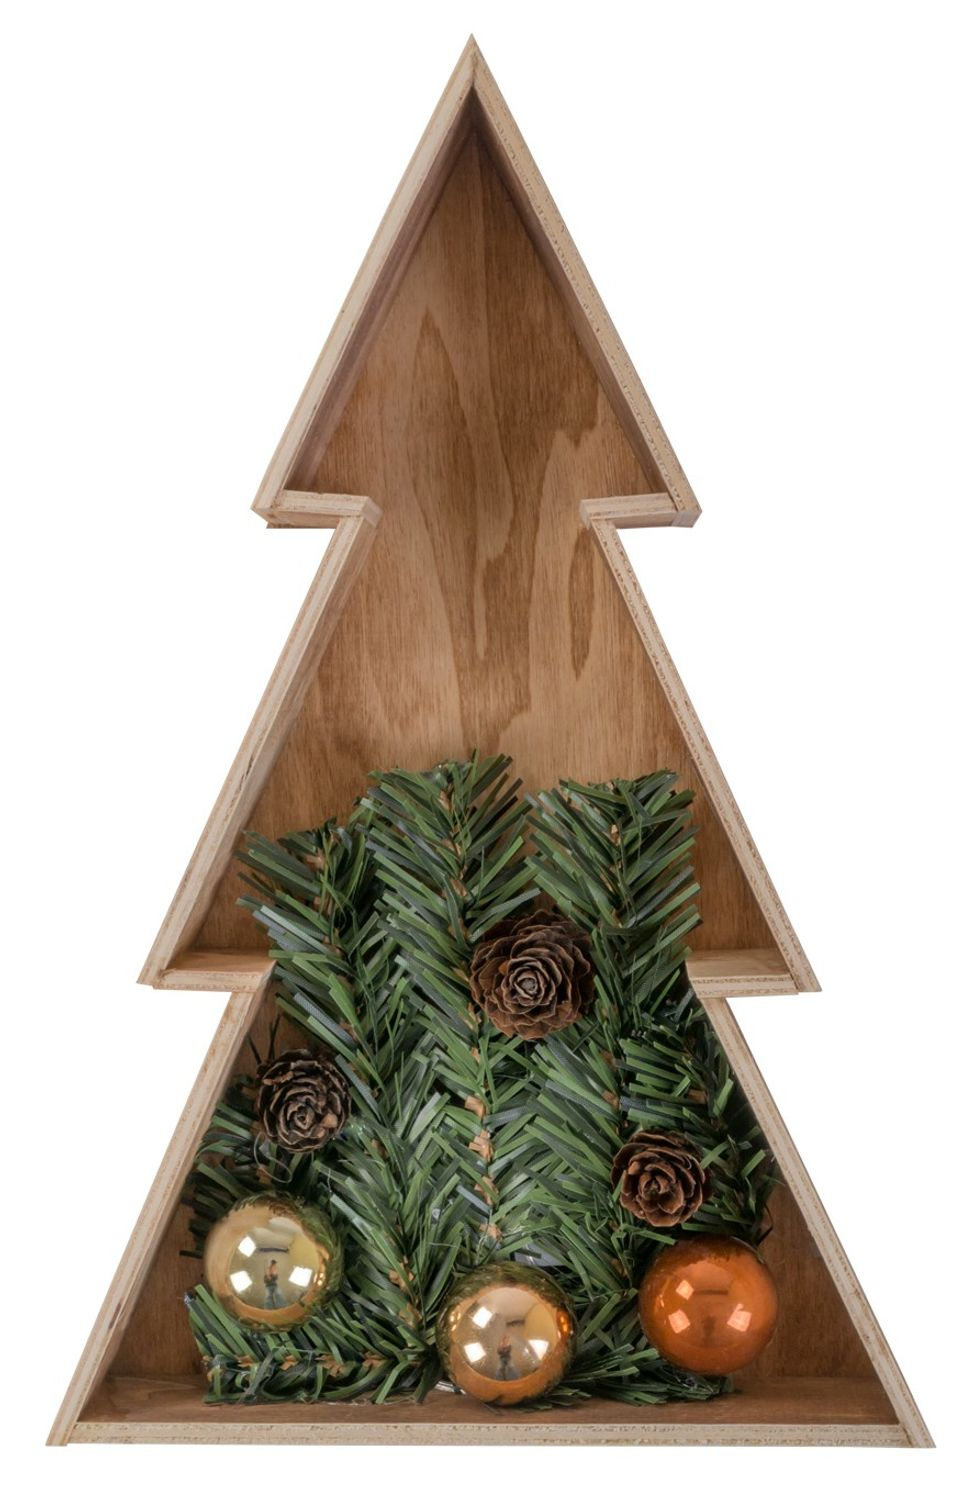 3d holz weihnachtsbaum 28 cm holztanne weihnachten leuchtbaum tischdeko echtholz m bel wohnen. Black Bedroom Furniture Sets. Home Design Ideas